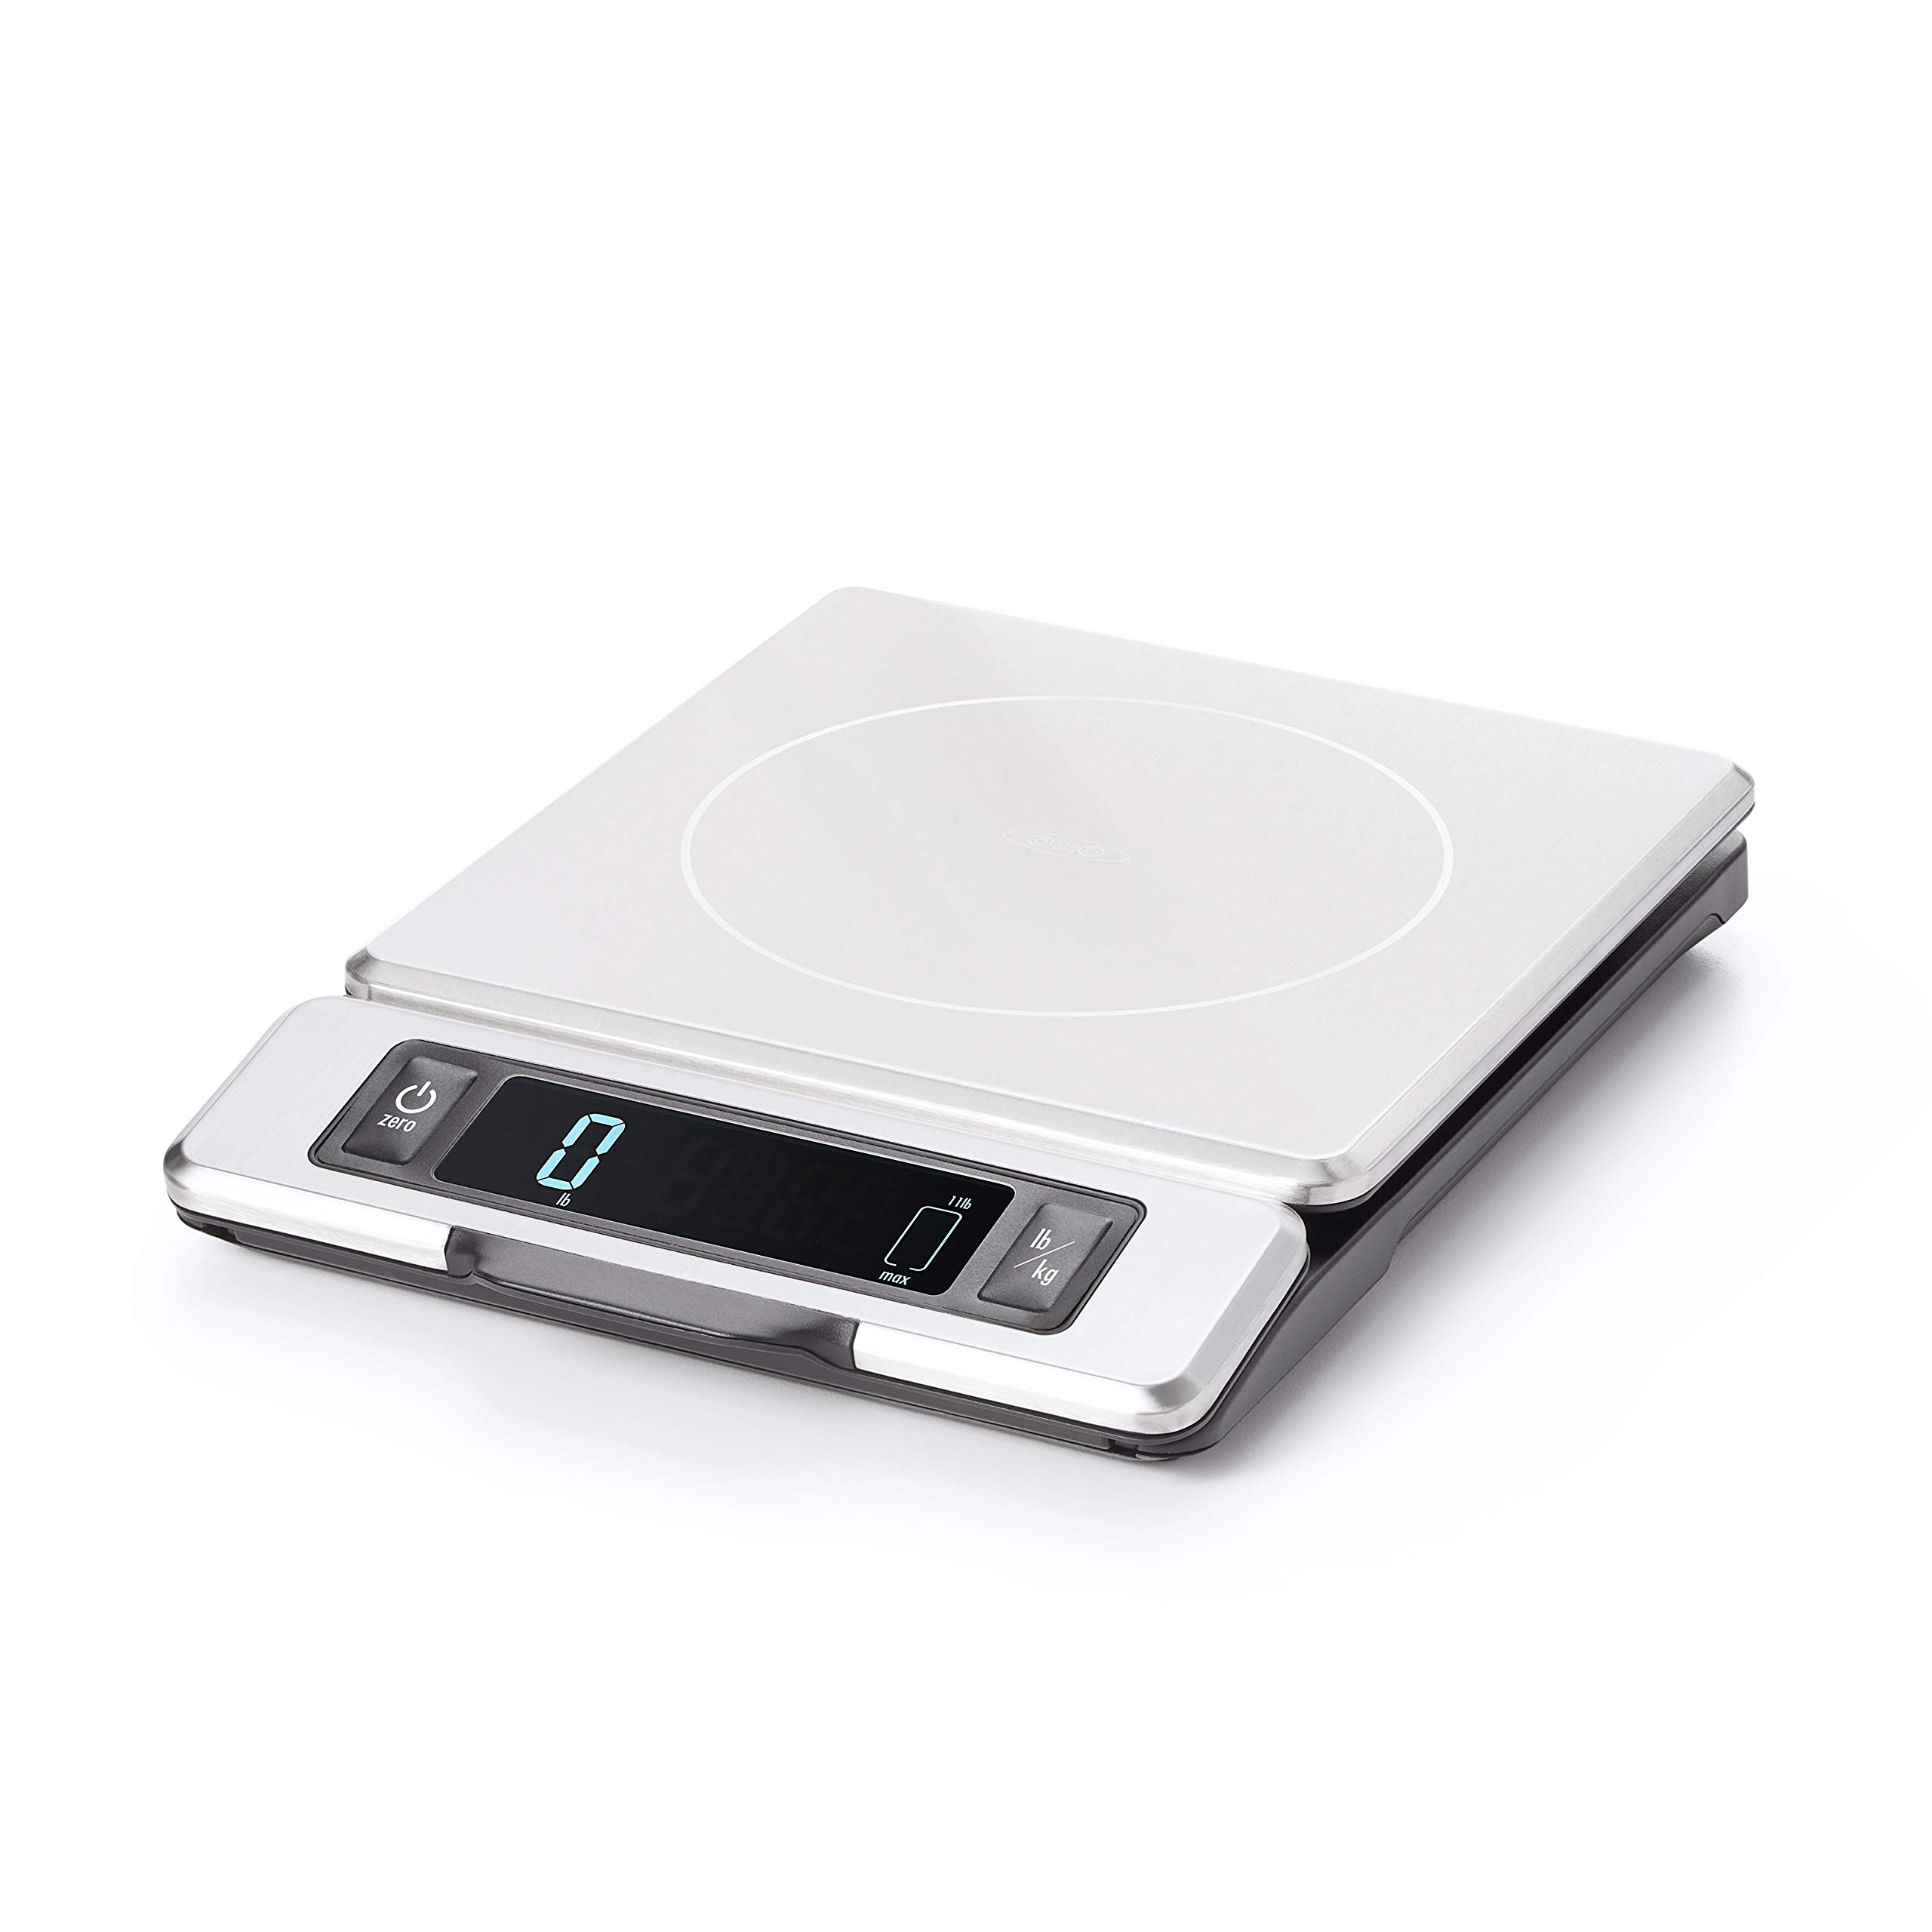 OXO Good Grips 11 Pound Stainless Steel Food Scale with Pull-Out Display by OXO